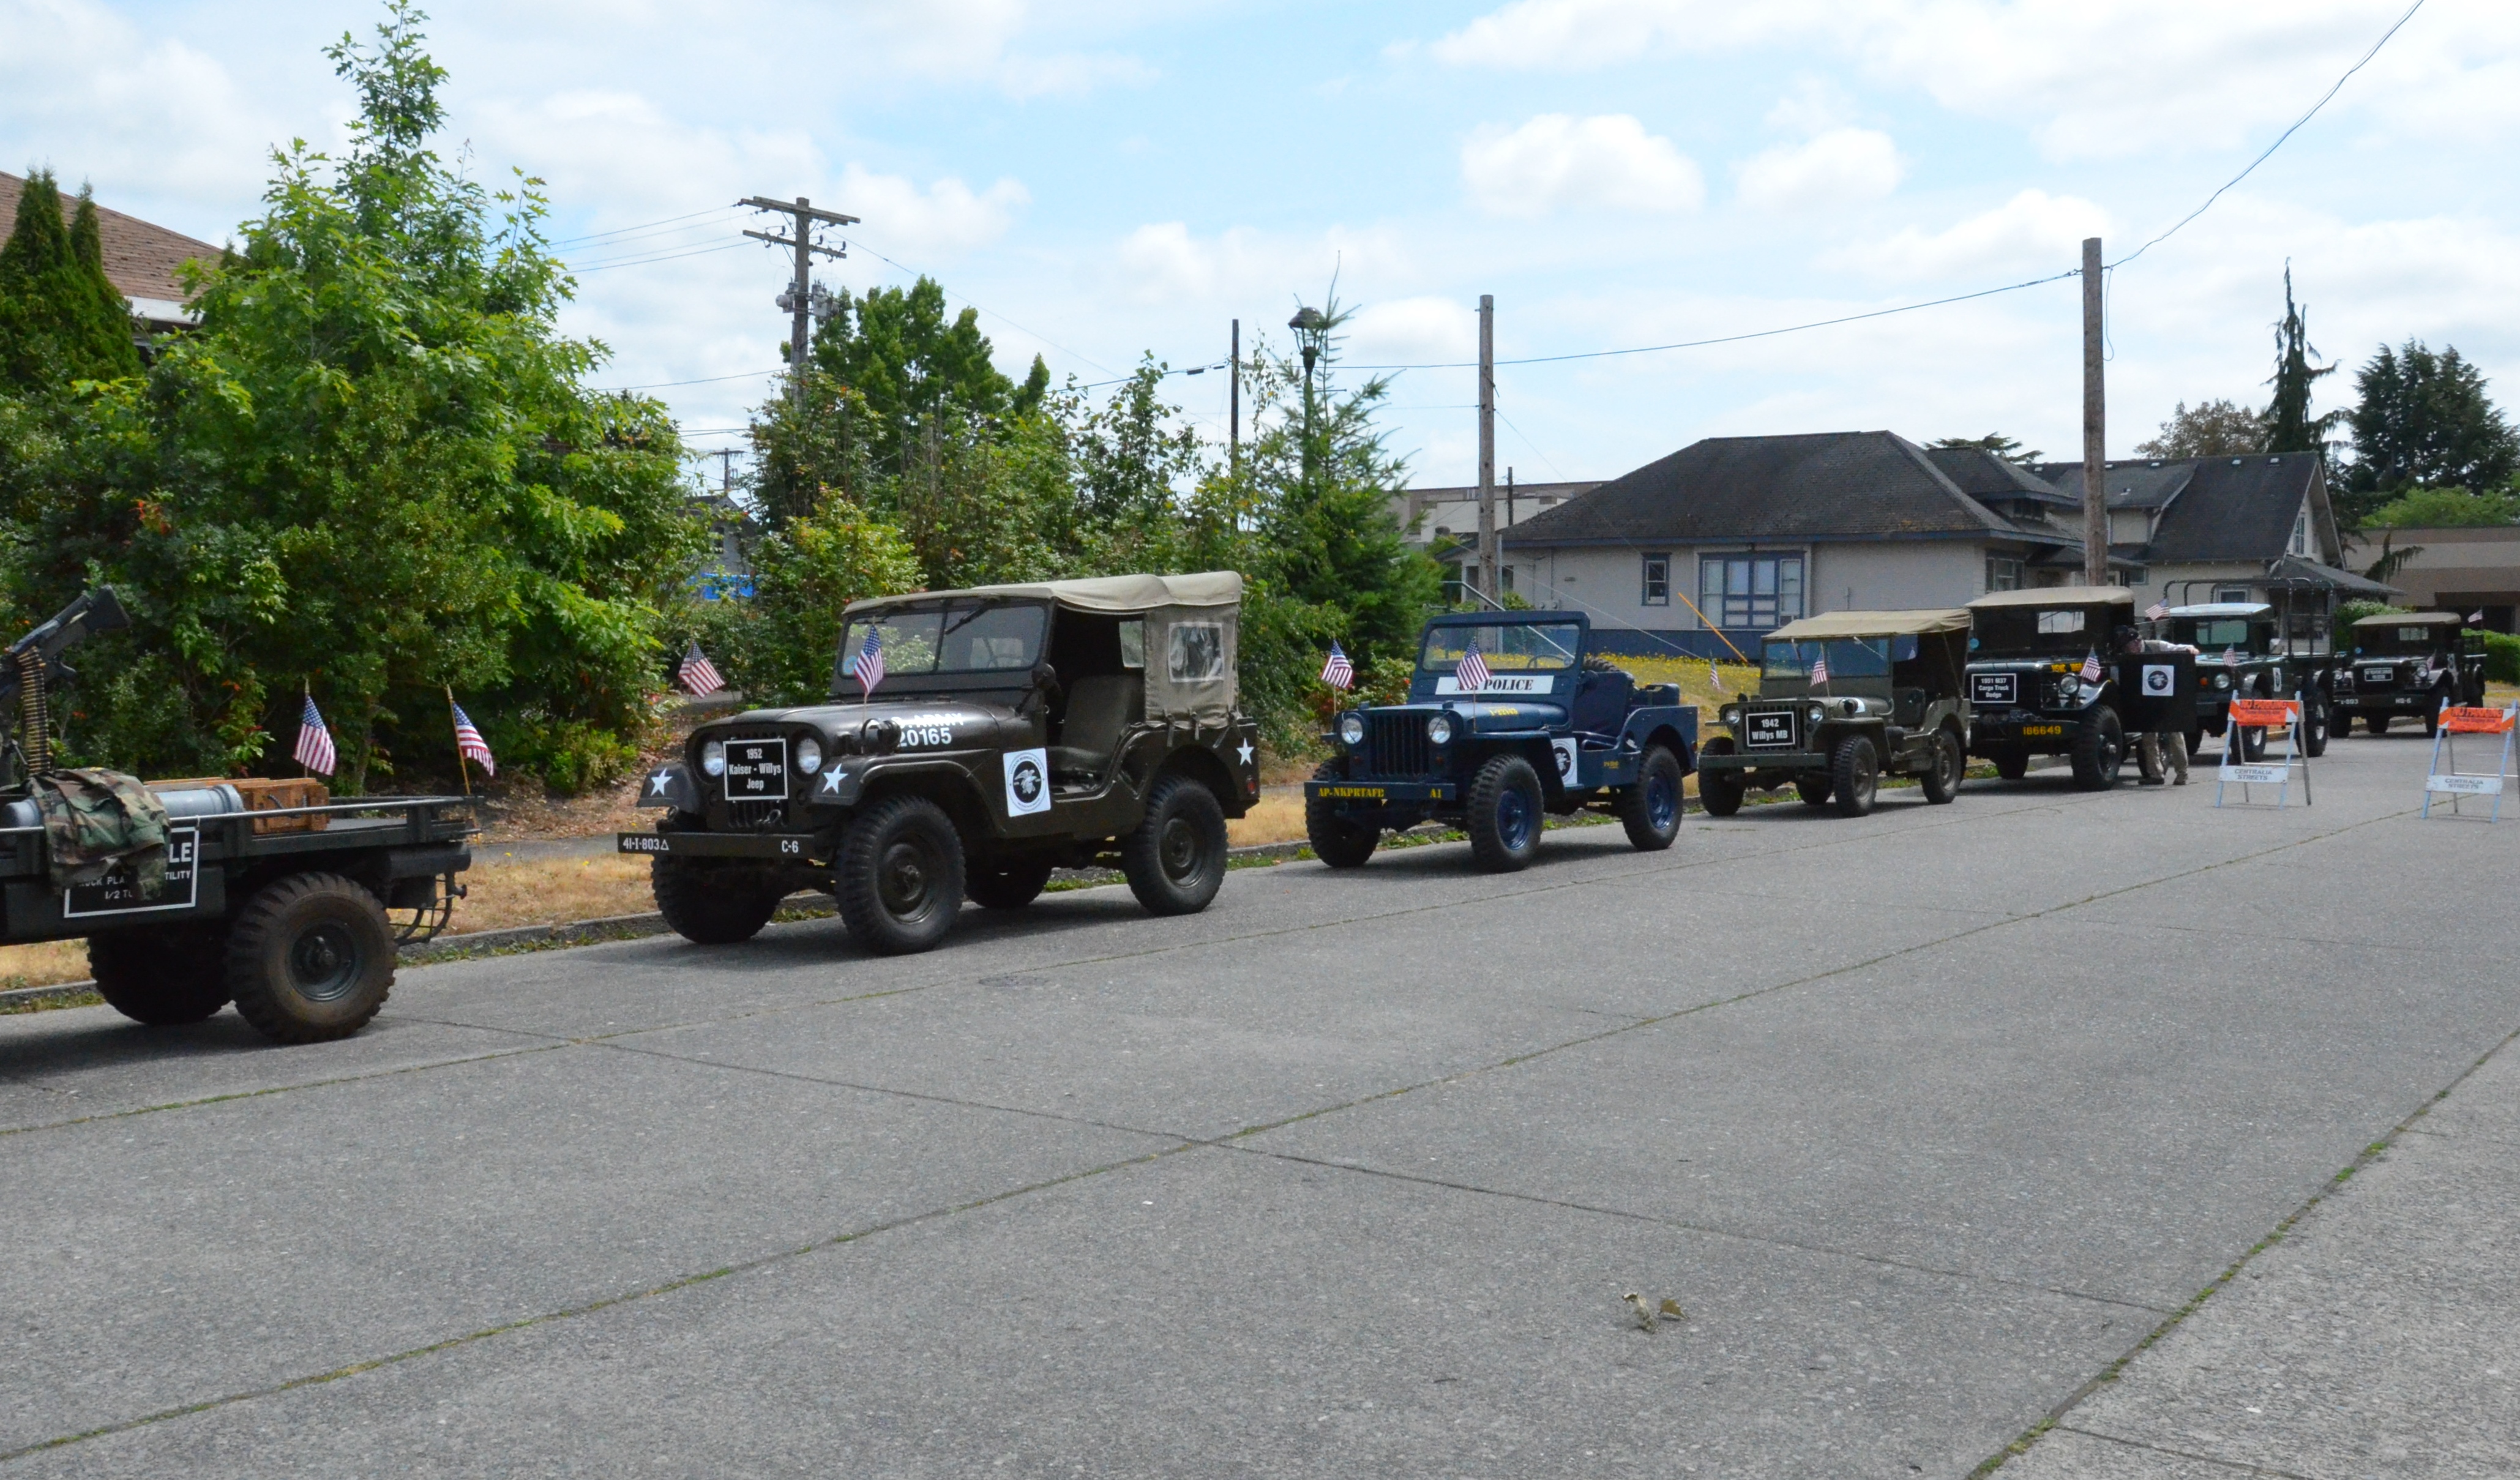 2019 Independence Day Parade Veterans Museum Style